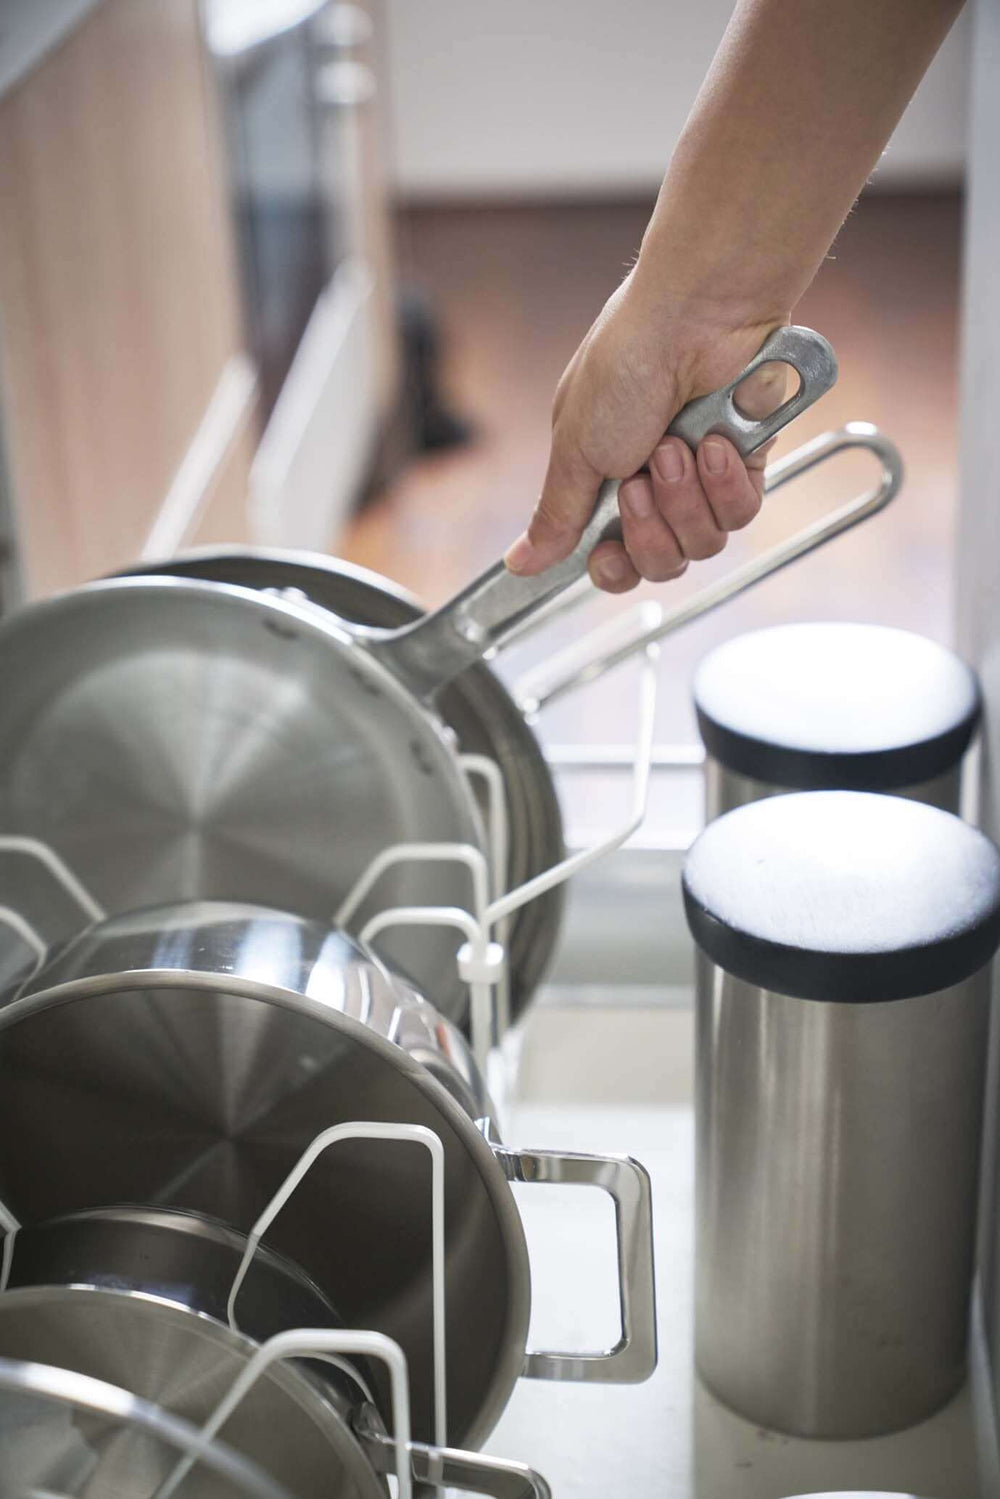 Person easily removing a pan by its handle from the lid and pan organizer